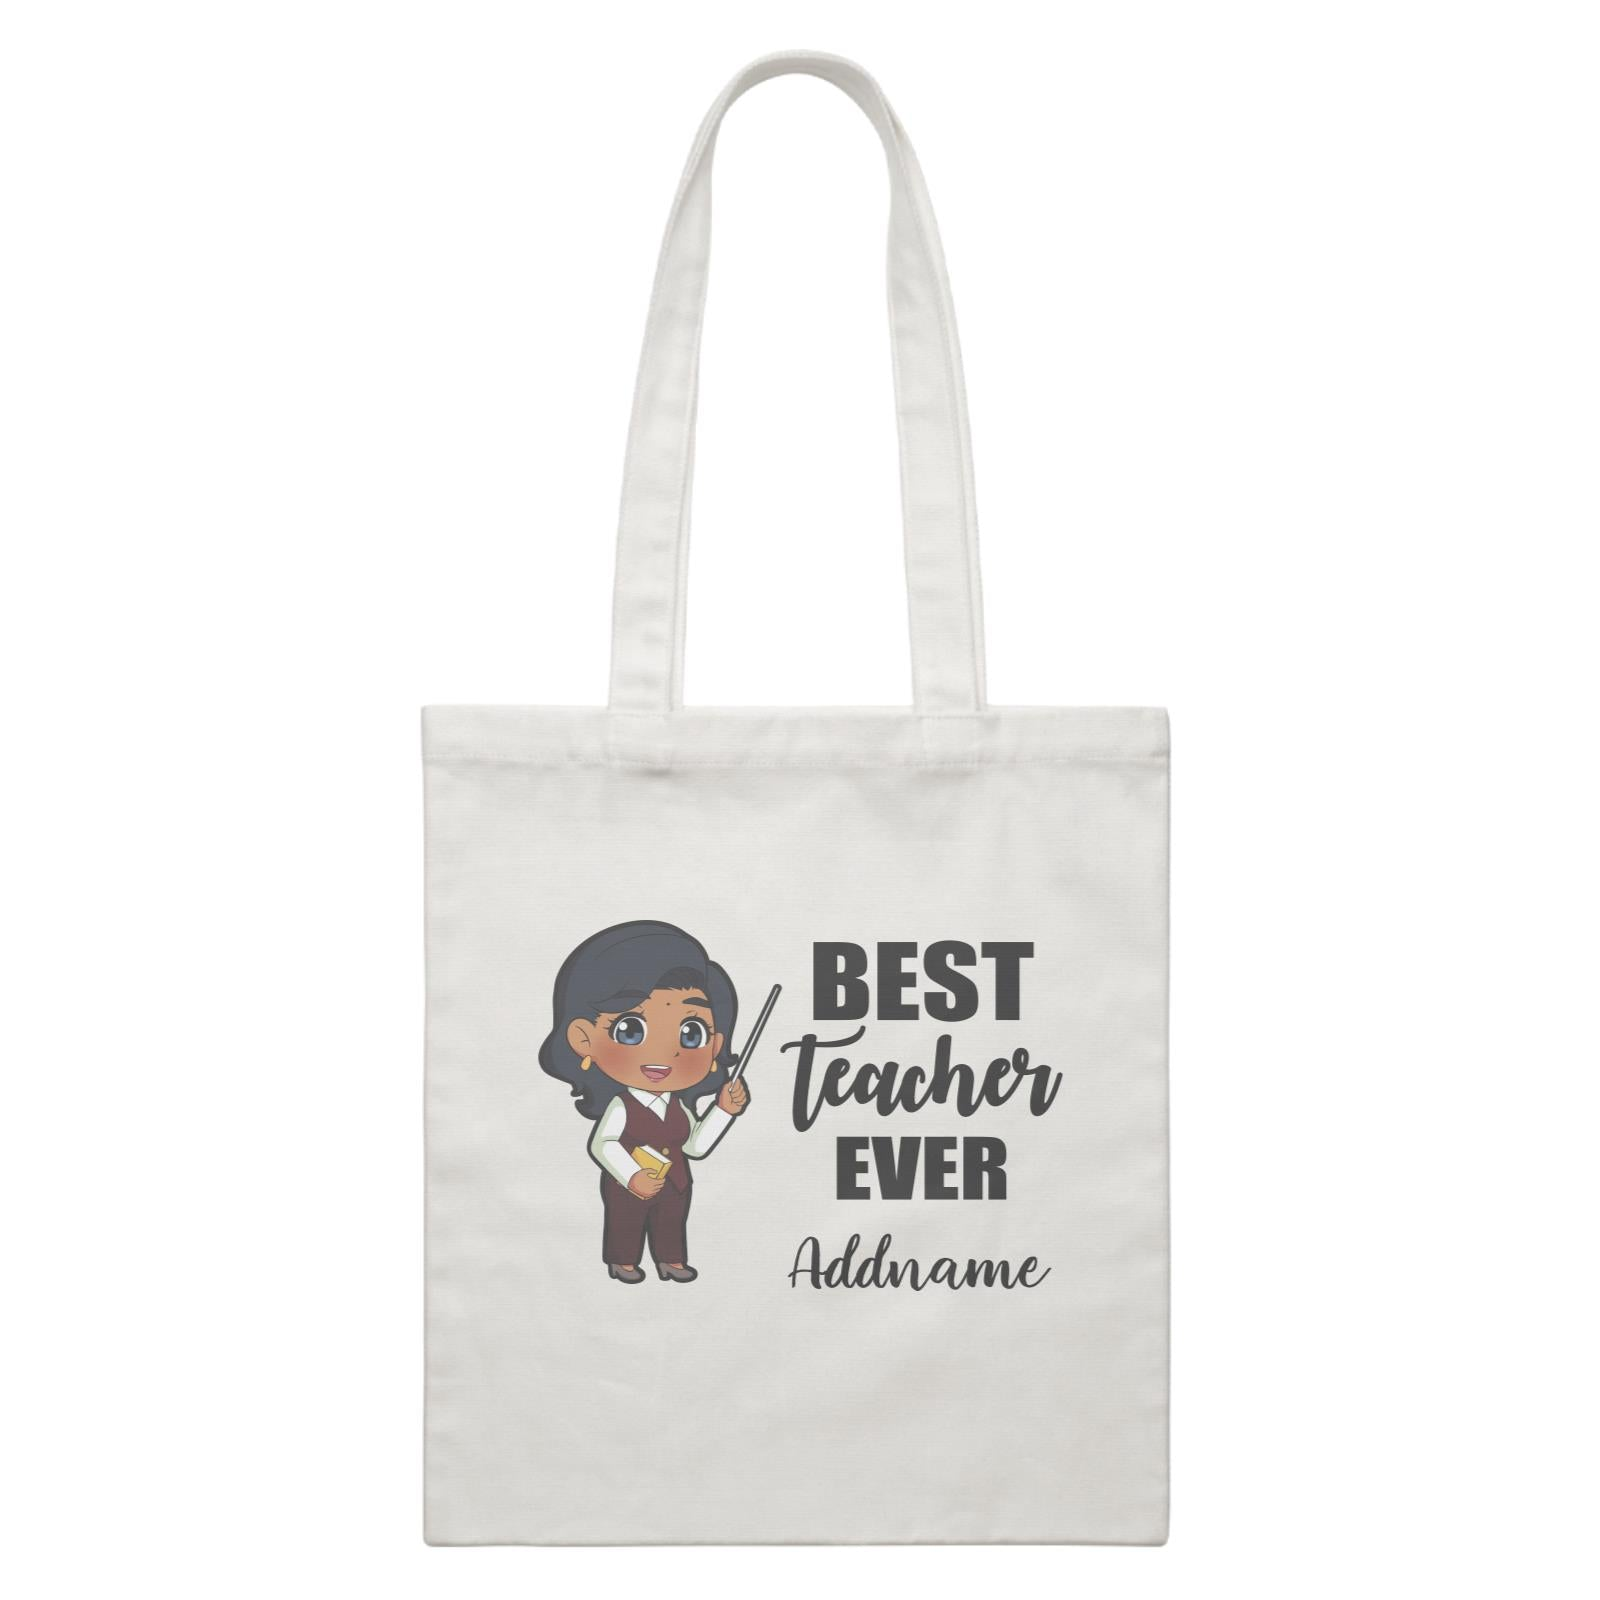 Chibi Teachers Indian Woman Best Teacher Ever Addname White Canvas Bag